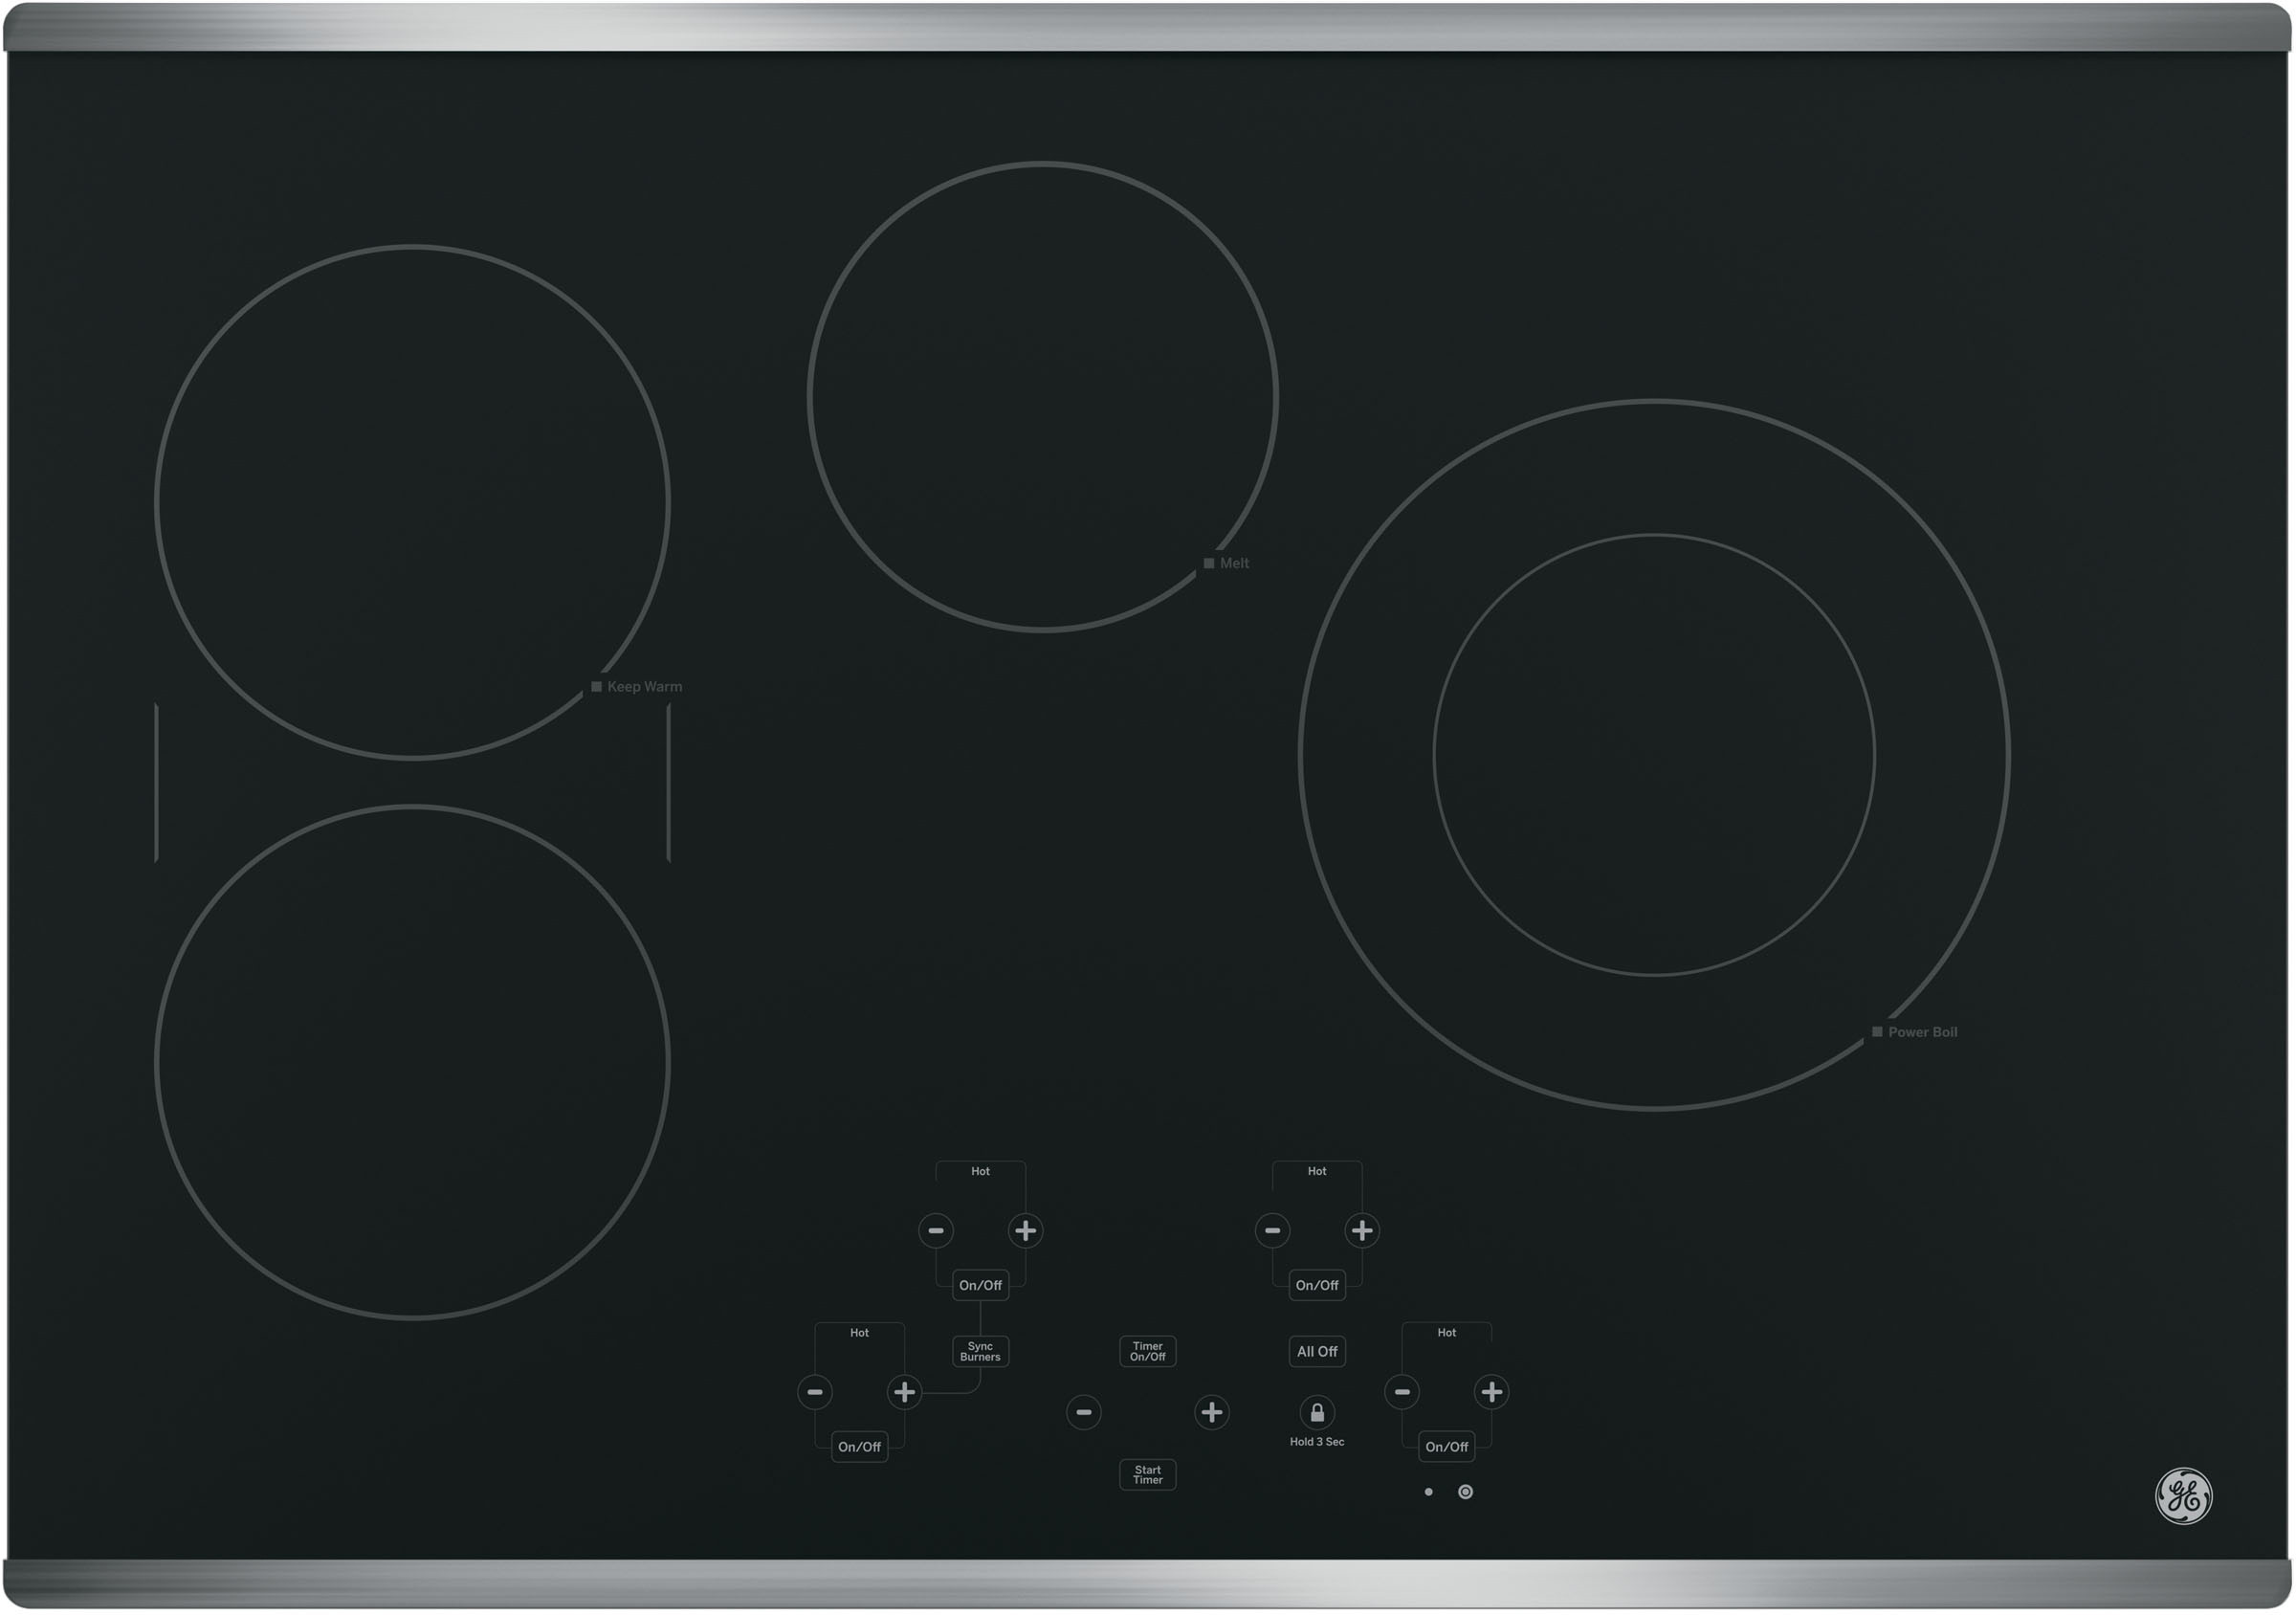 GE 30 in. Radiant Electric Cooktop in Stainless Steel with 4 Elements including Power Boil Element, Silver -  JP5030SJSS